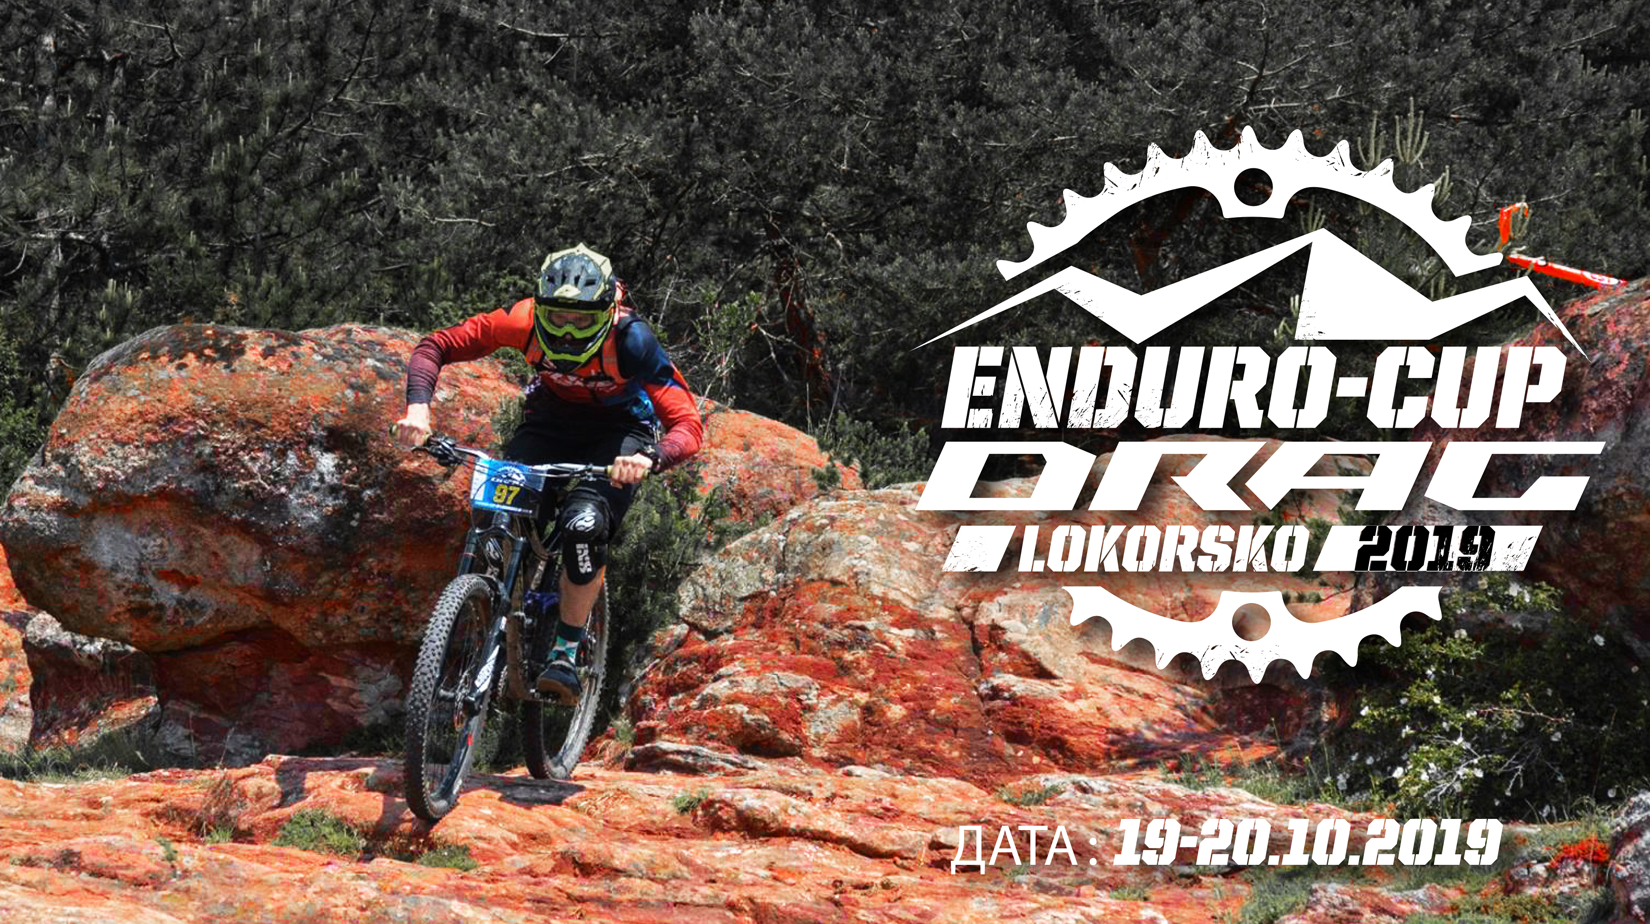 ENDURO-Lokorsko-2019-fb-cover_web-banner